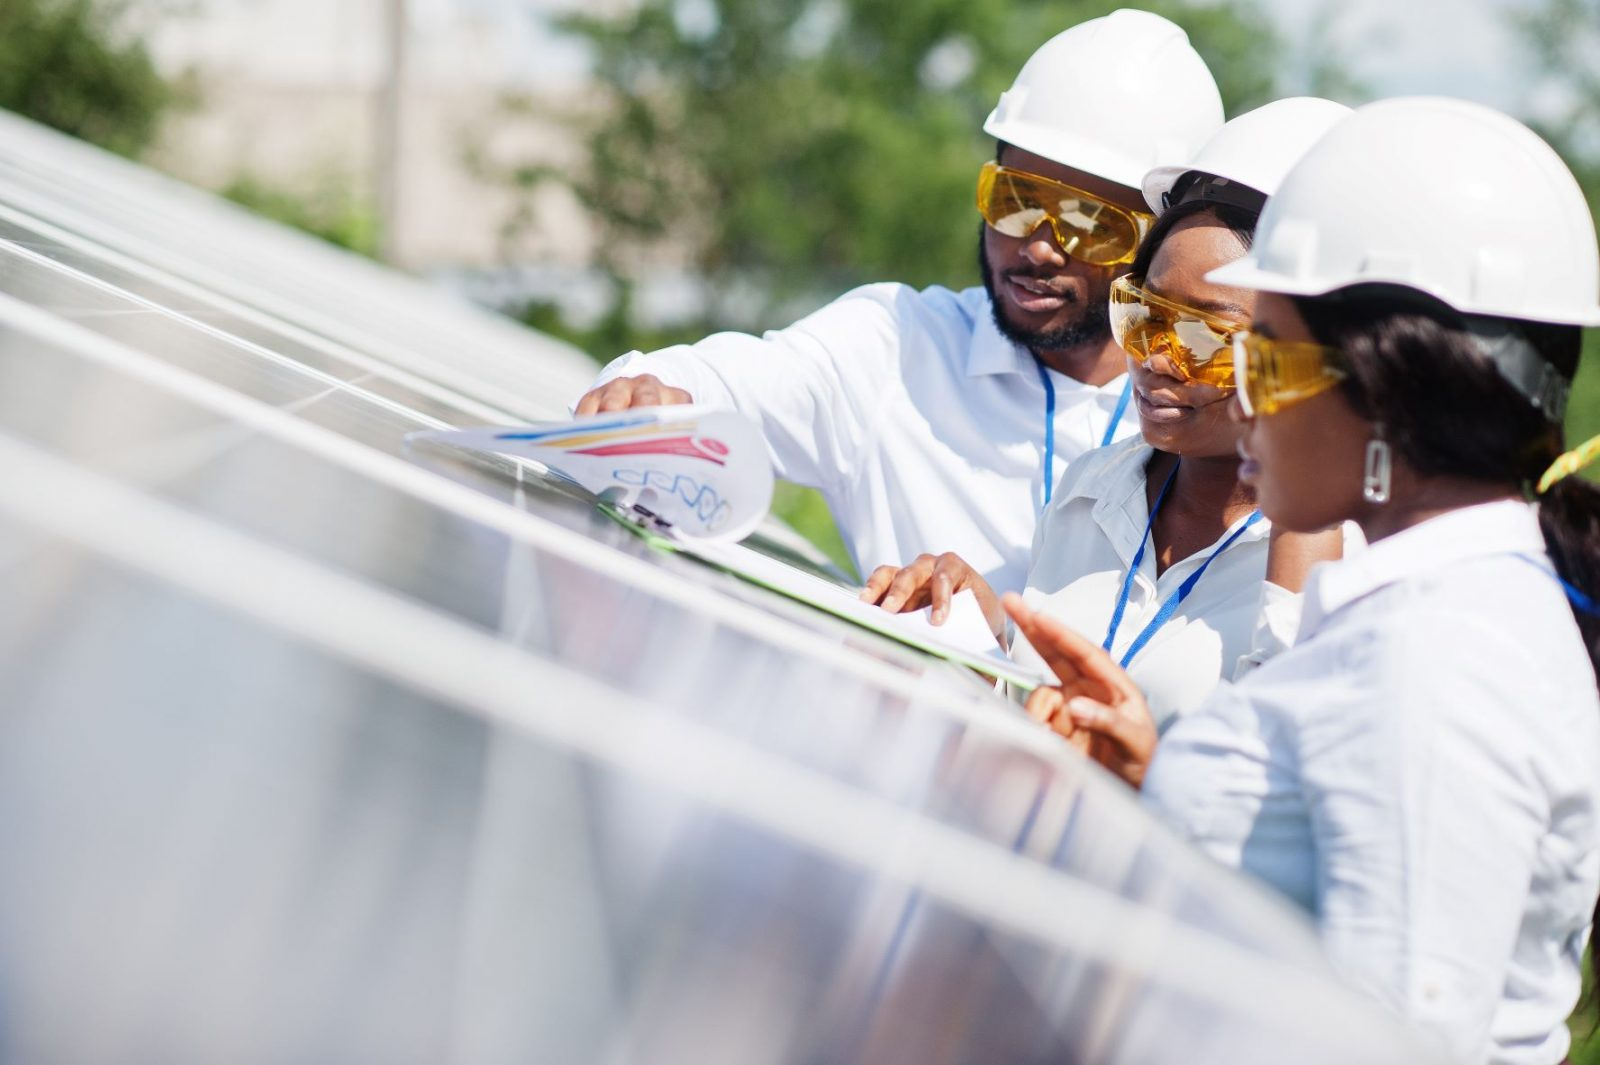 Photo of solar power engineers. The U.S. Trade and Development Agency awarded a grant to Nigeria's EM-ONE Energy Solutions Limited for a feasibility study that will strengthen healthcare delivery in rural and underserved regions of Nigeria through solar minigrid systems.